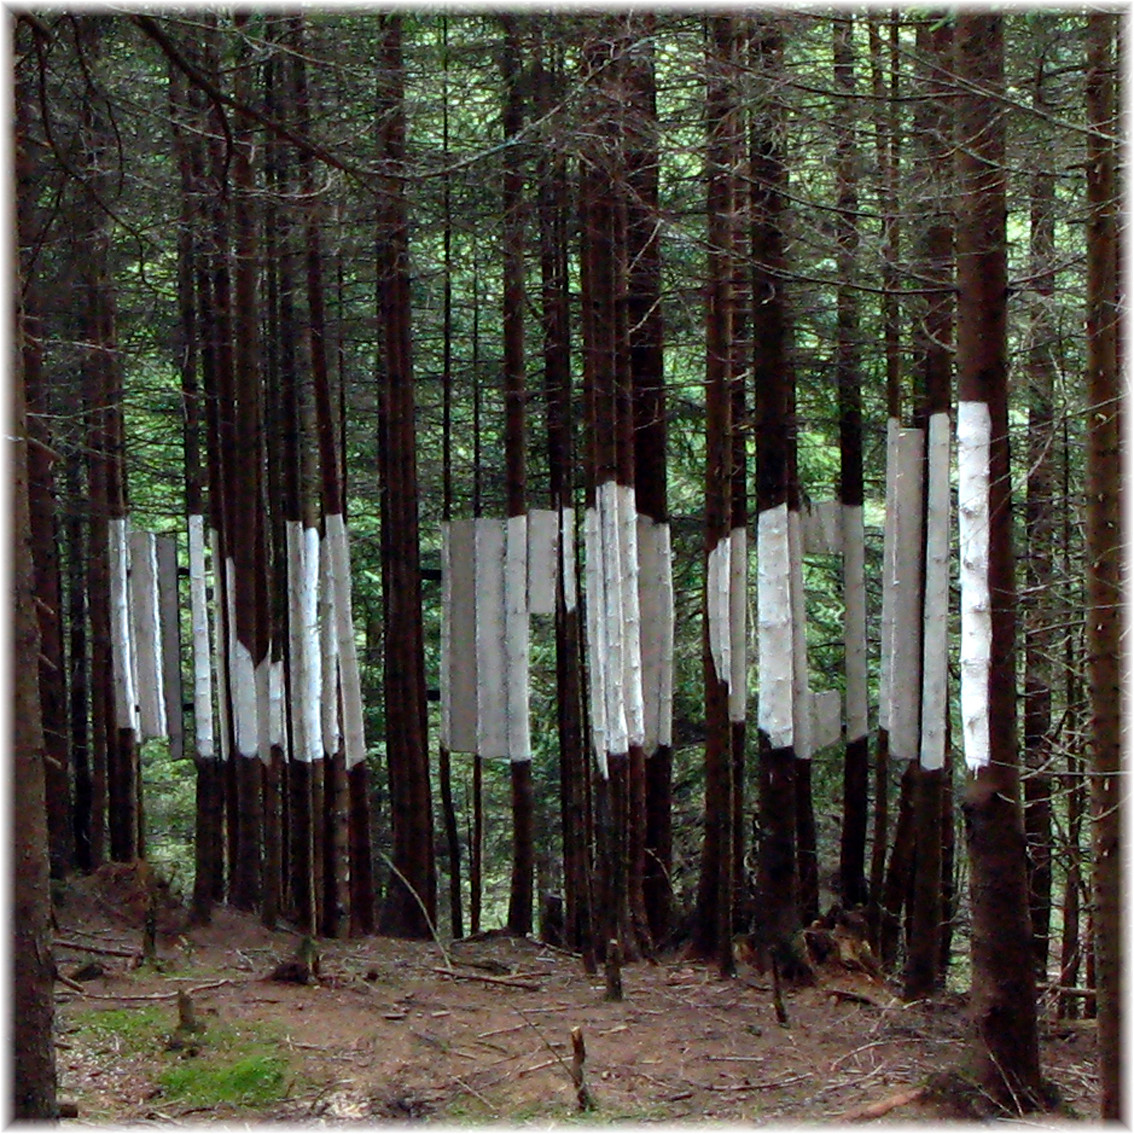 Und- perspektivische Installation, Pillberg, 2008, Wolfgang Wallner, Hall in Tirol